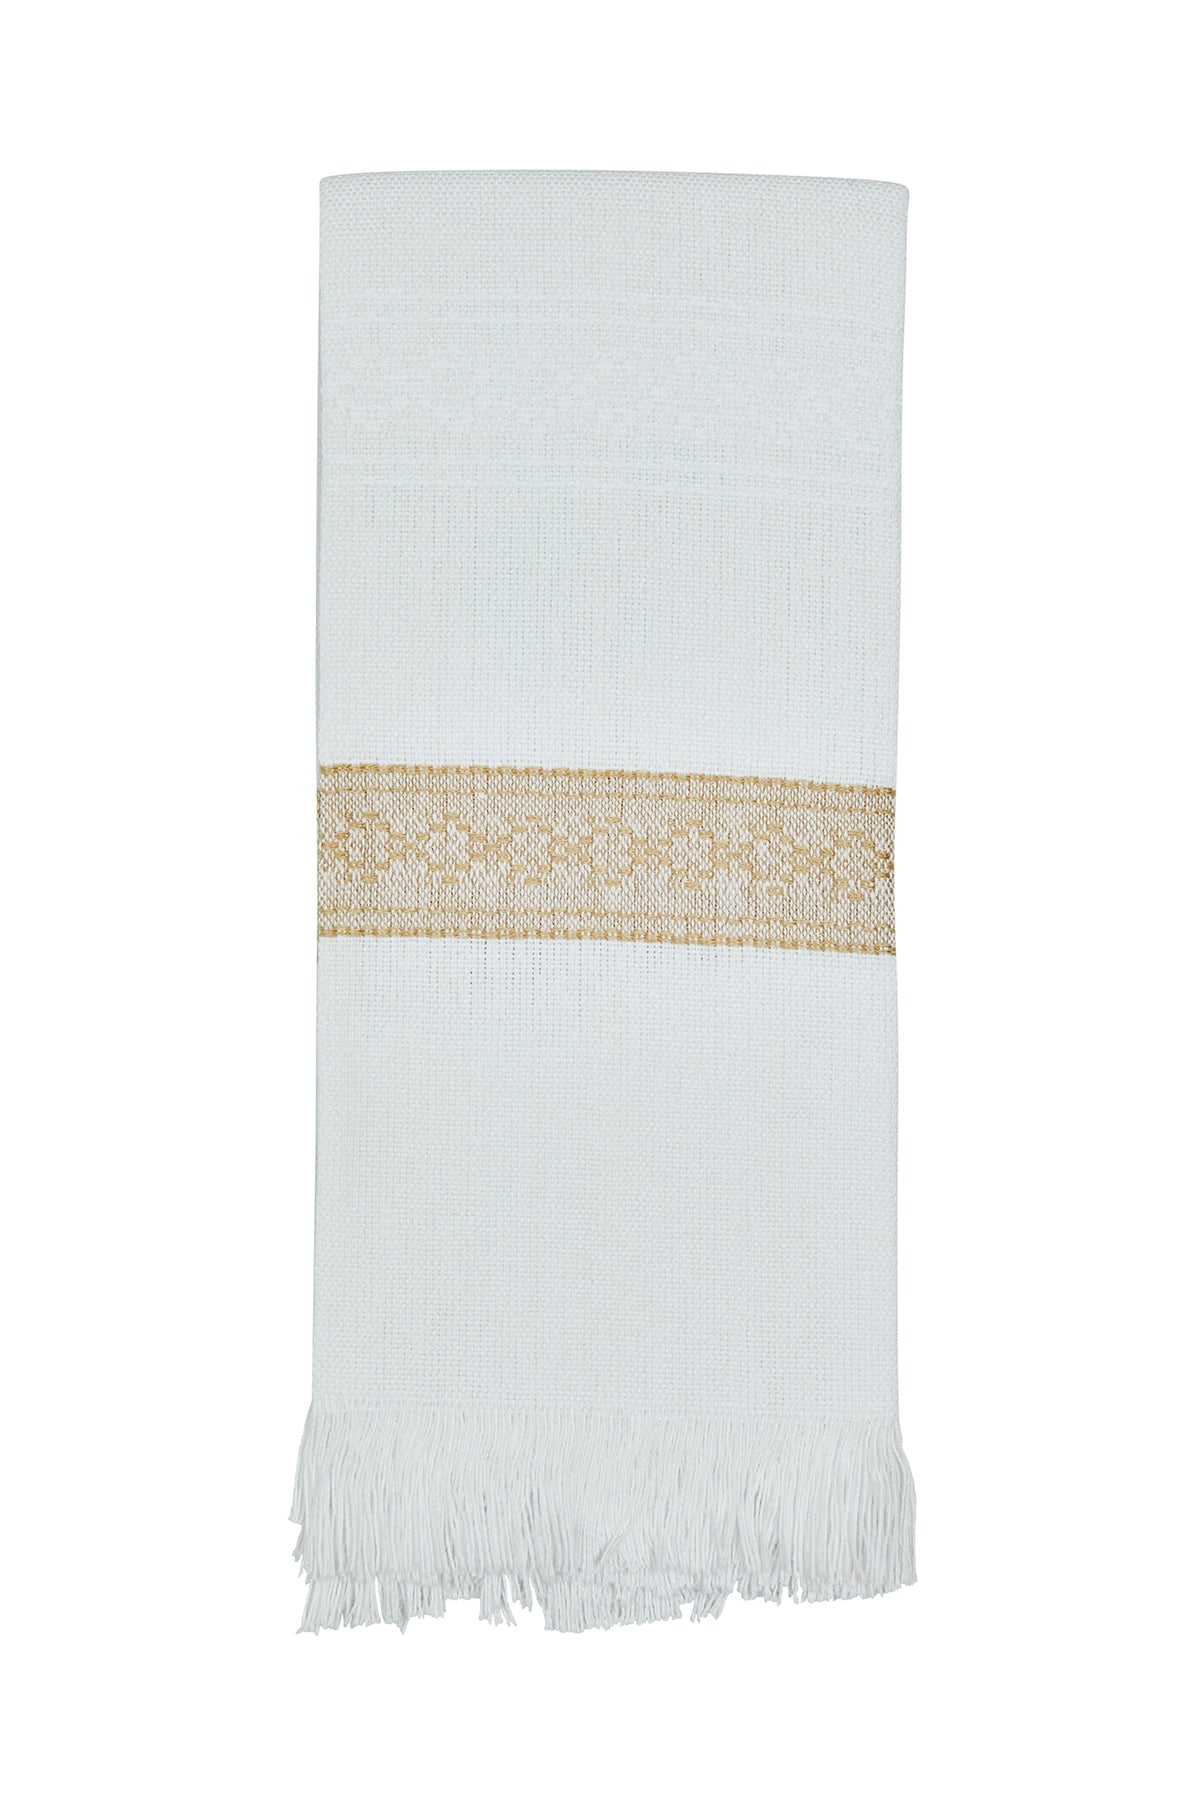 All Cotton Hand Woven Towel ~ Coastal Beige